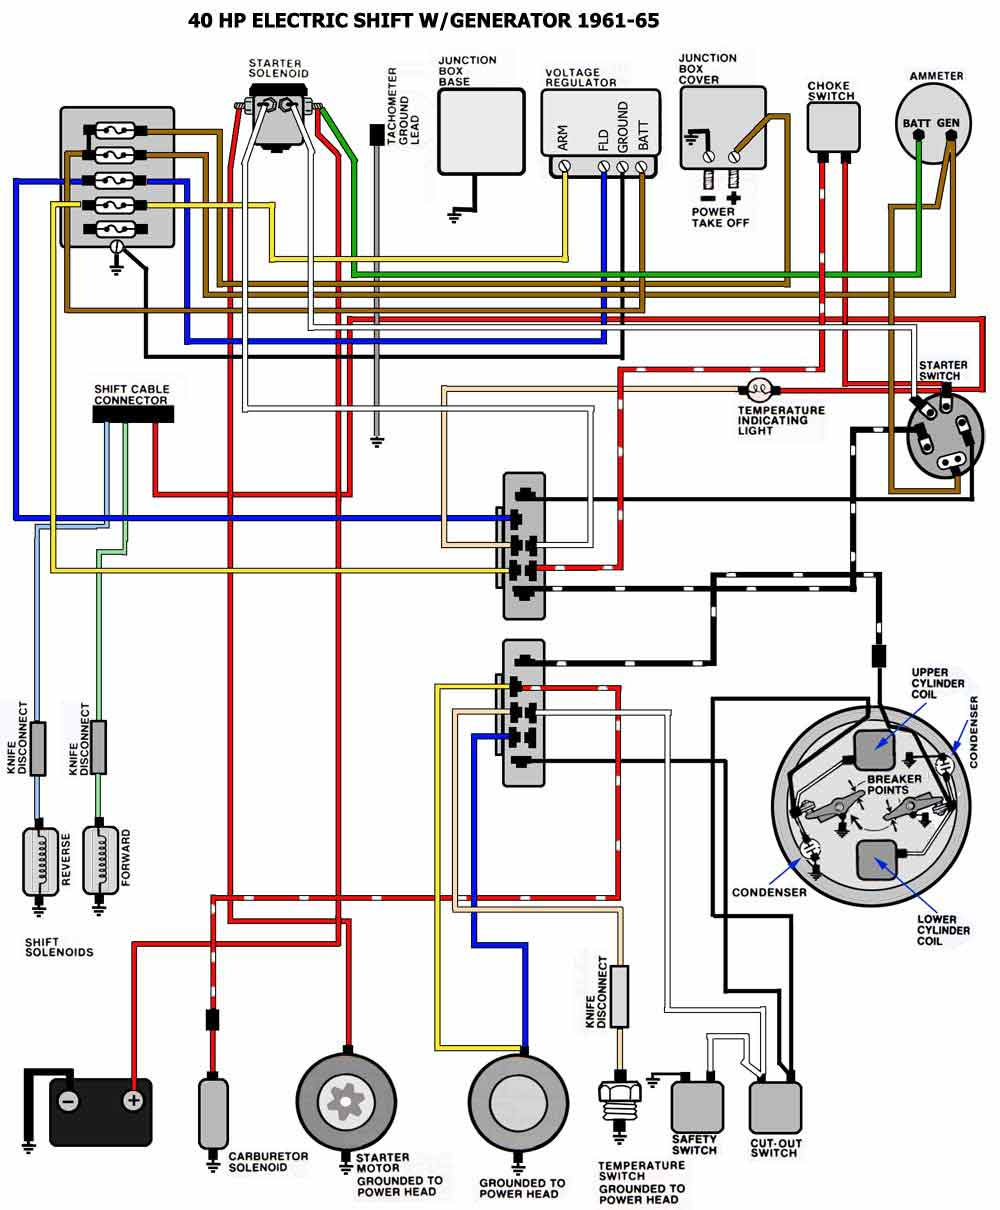 1988 Johnson 9 Hp Outboard Parts Diagram Wiring - Wiring